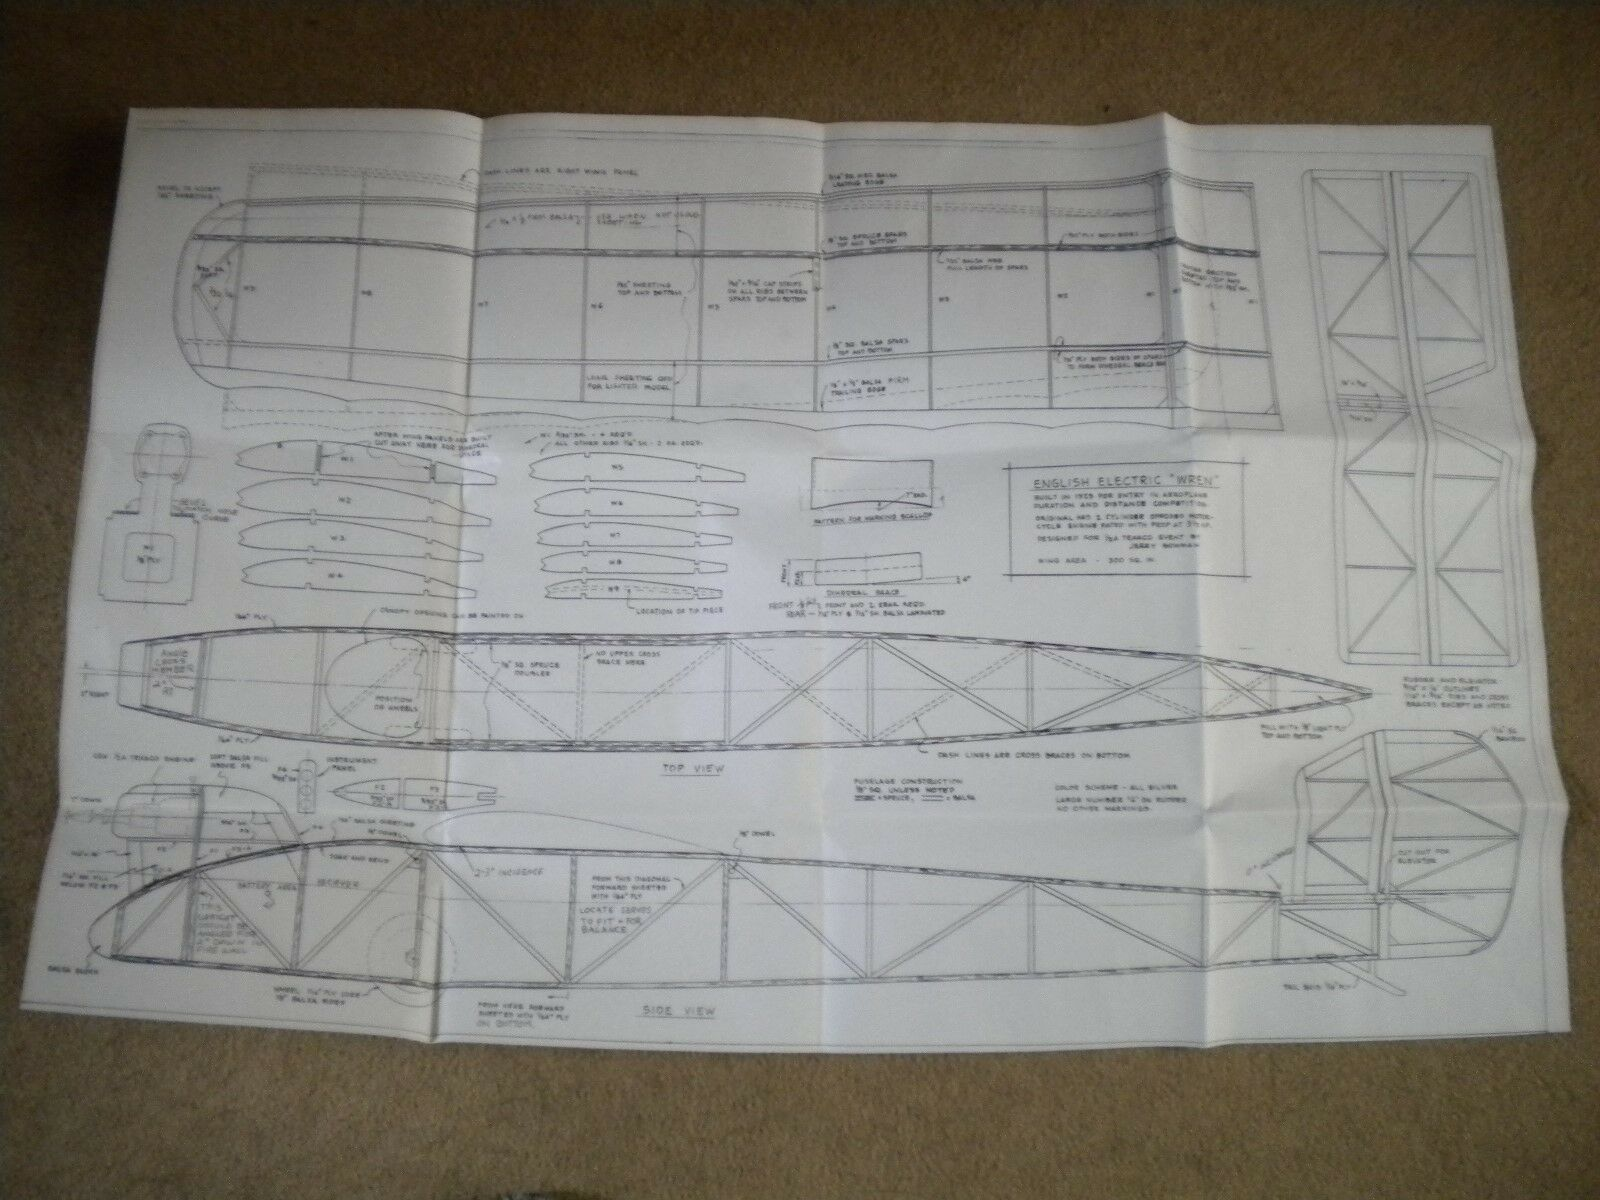 R C English Electric Wren Plans And Doentation Including Some Pre Cut Balsa